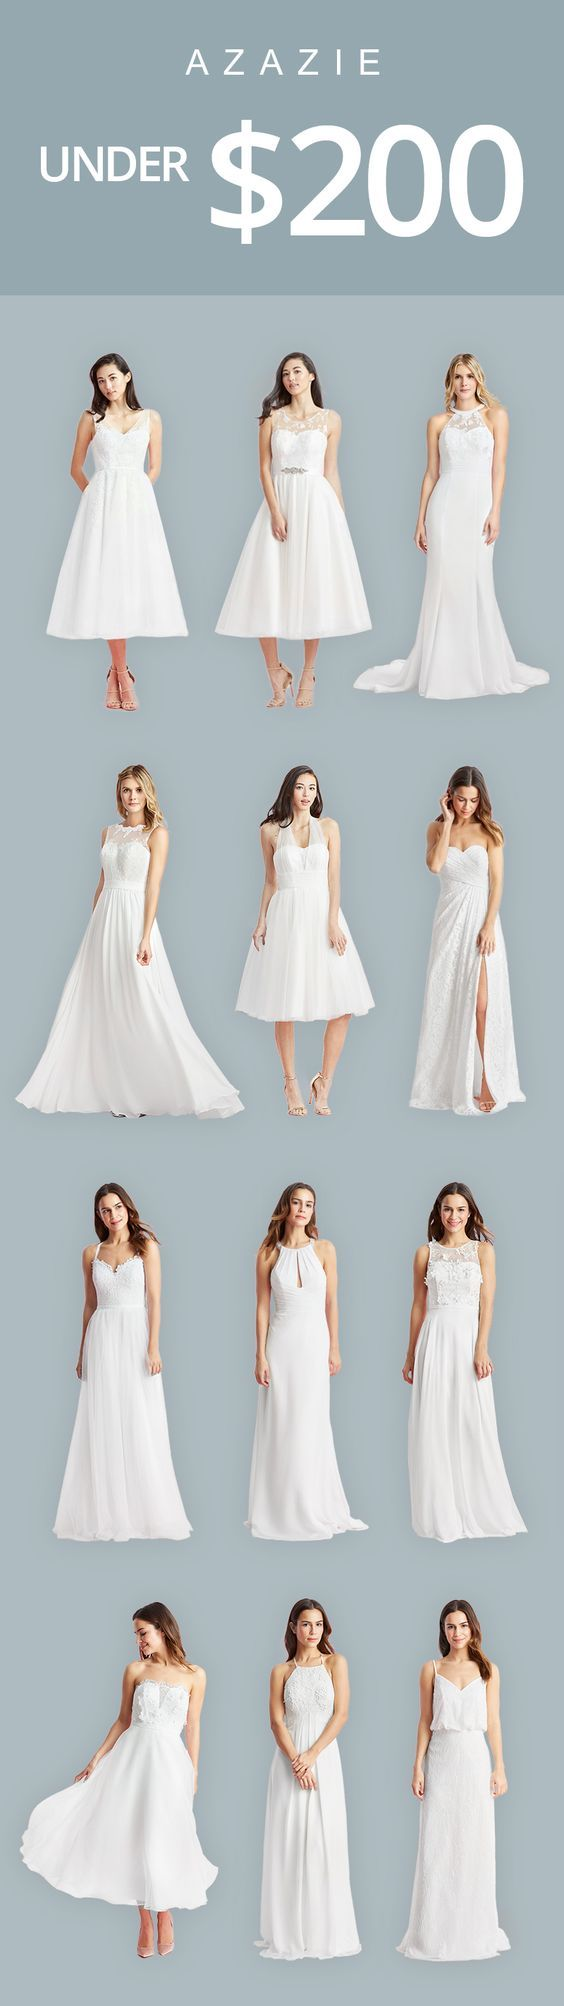 relaxed wedding dress wedding dress under $ Looking for a relaxed wedding gown under Check out these bridal gowns and wedding